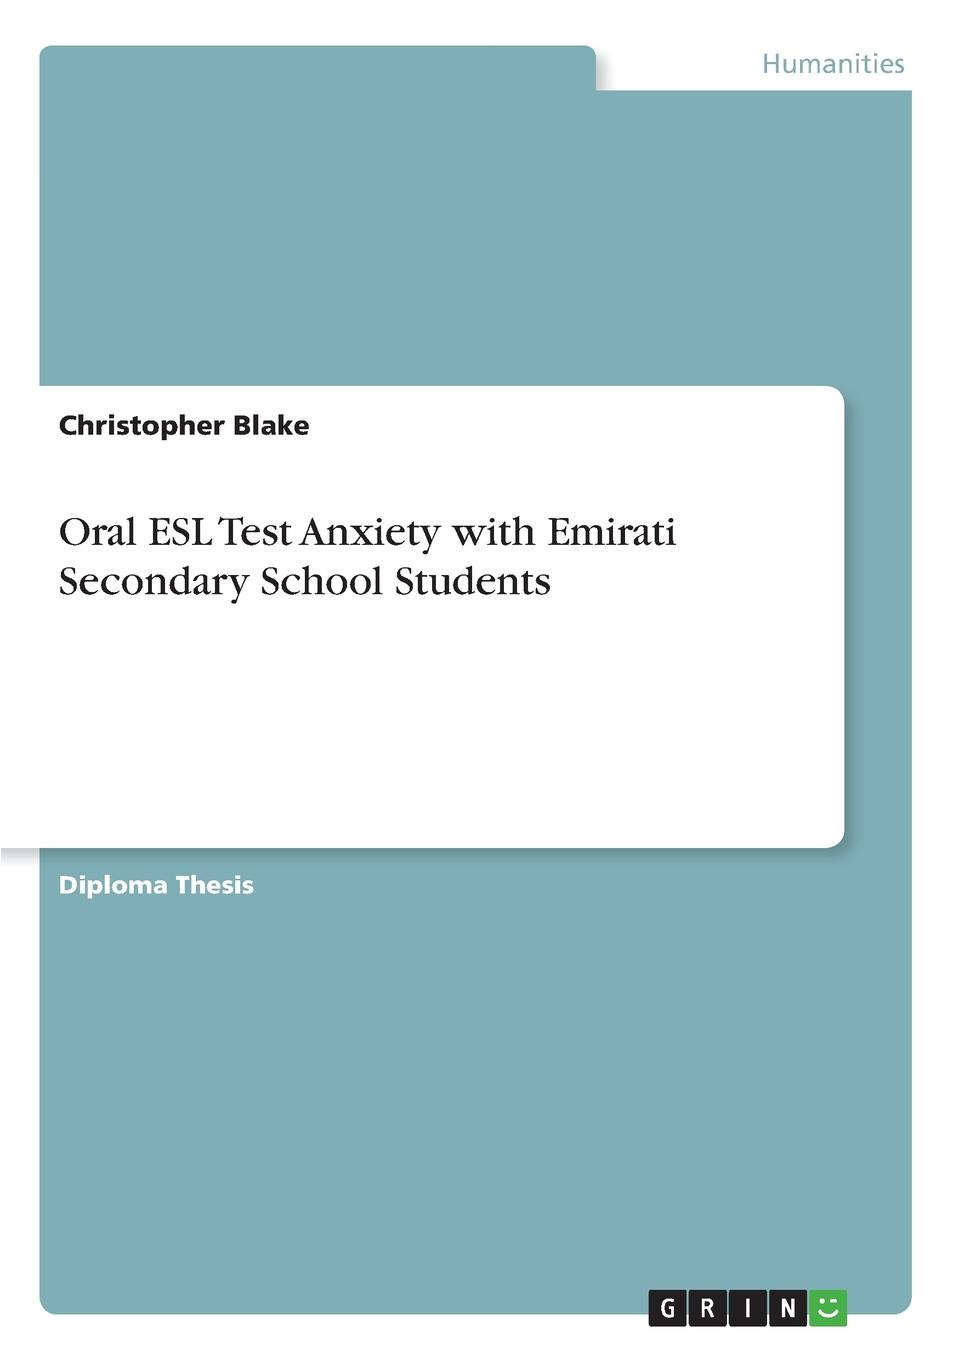 Christopher Blake Oral ESL Test Anxiety with Emirati Secondary School Students the japanese language proficiency test n2 mock test 2 тренировочные тесты jlpt n2 часть 2 cd книга на японском языке